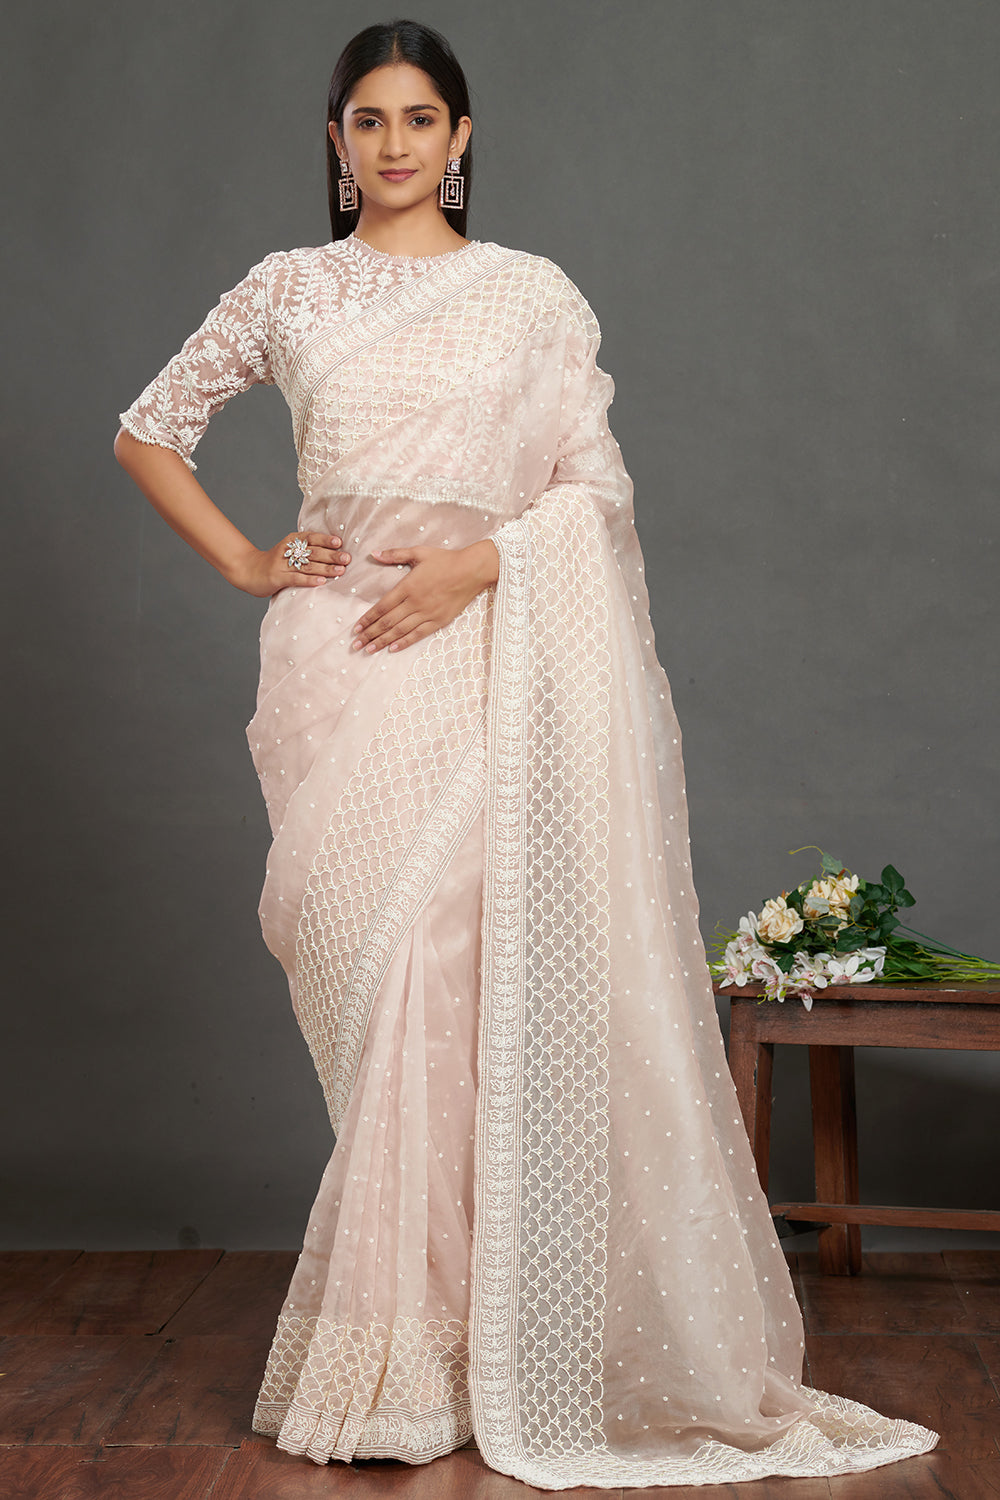 Shop gorgeous light pink lace saree online in USA with self-work saree blouse. Make a fashion statement on festive occasions and weddings with designer sarees, embroidered saris, handwoven saris, party wear sarees from Pure Elegance Indian fashion store in USA.-full view